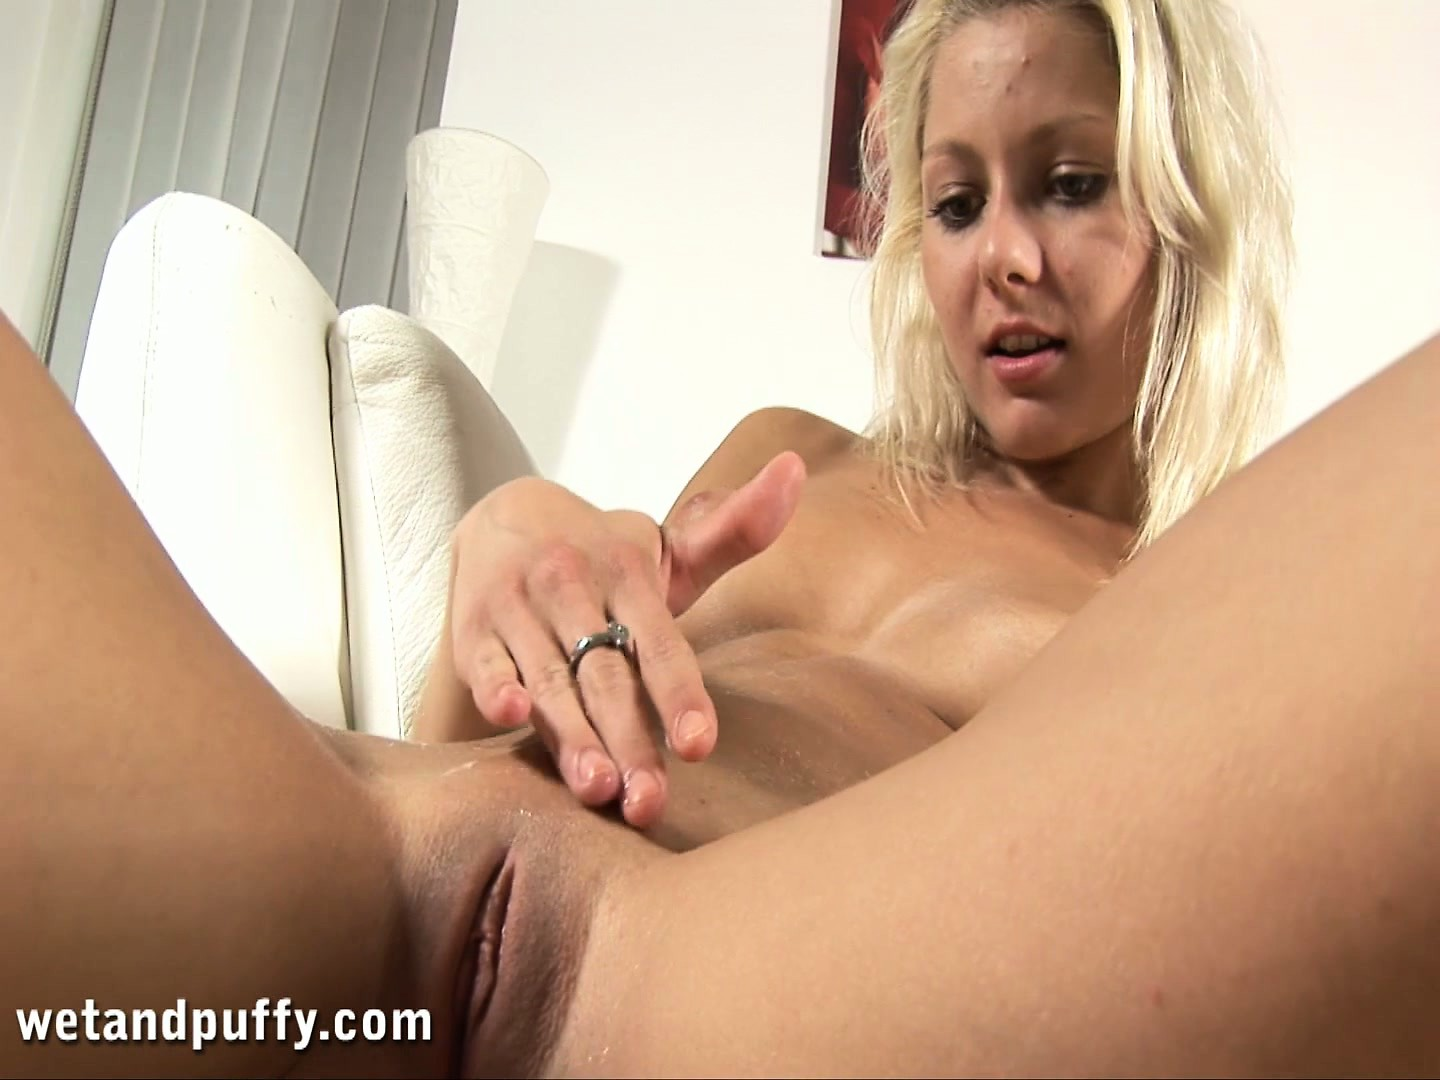 Porno Video of Ingrid, A Dazzling Blonde With Superb Tits And Ass, Loves To Finger Her Tight Pussy